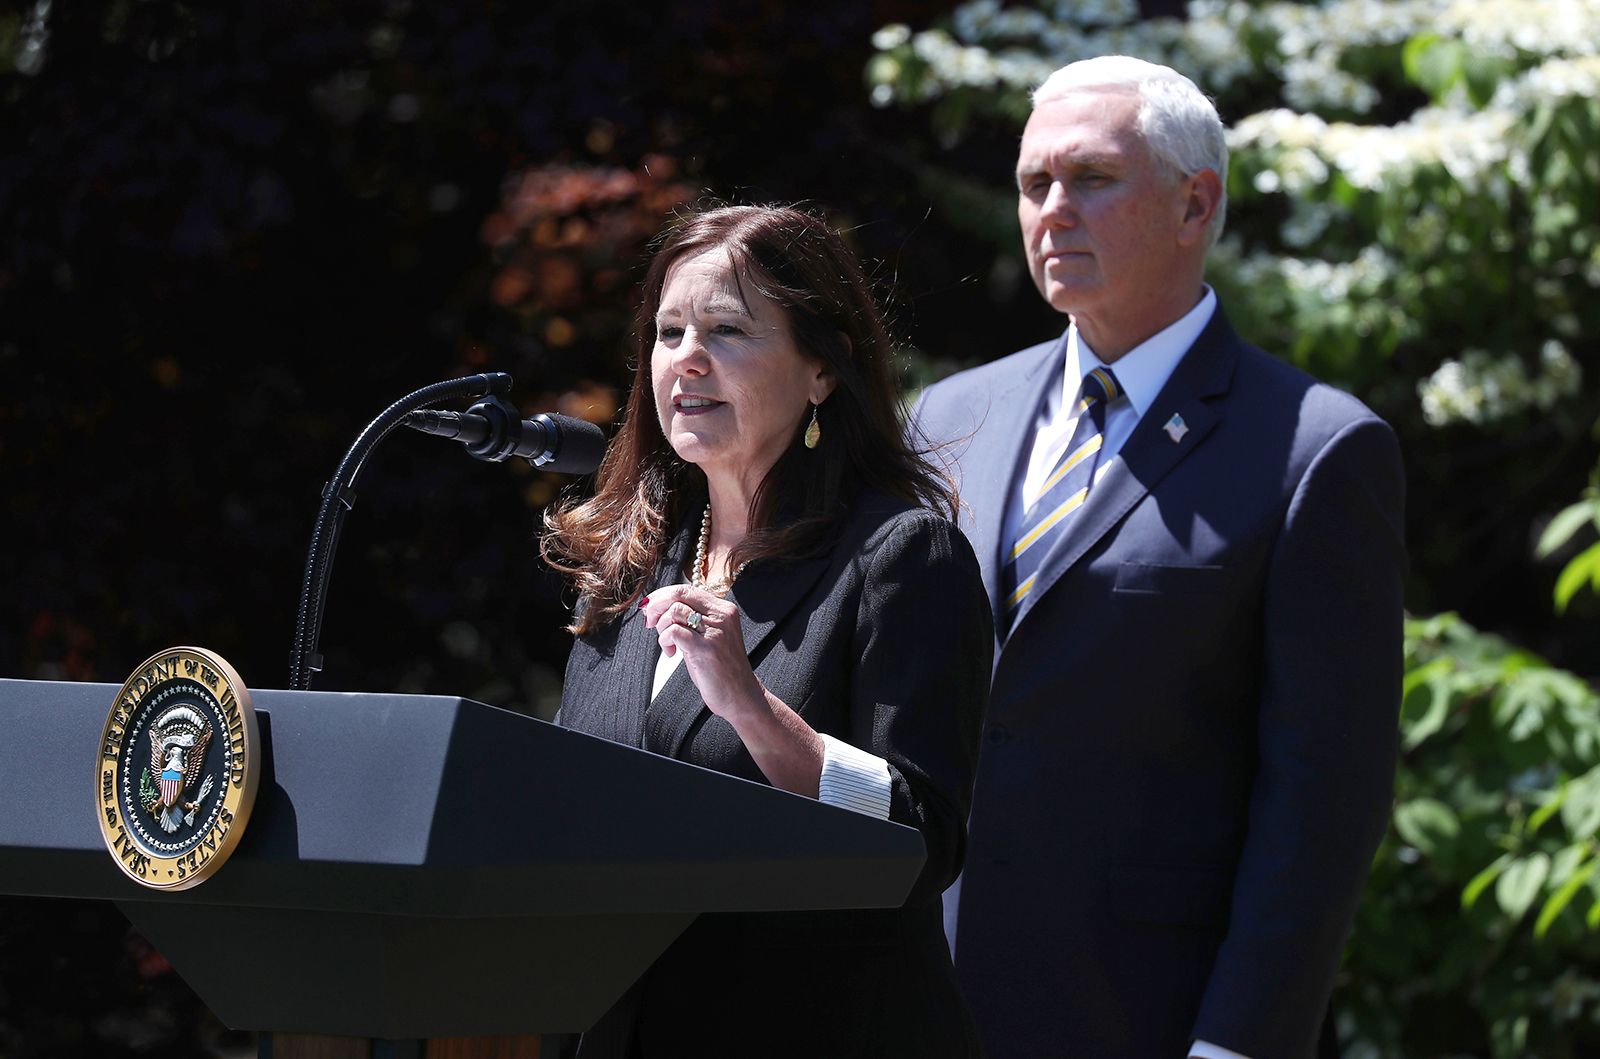 Second Lady Karen Pence speaks during an Earth Day and Arbor Day tree planting ceremony on the South Lawn of the White House in Washington, DC, on Wednesday, April 22.